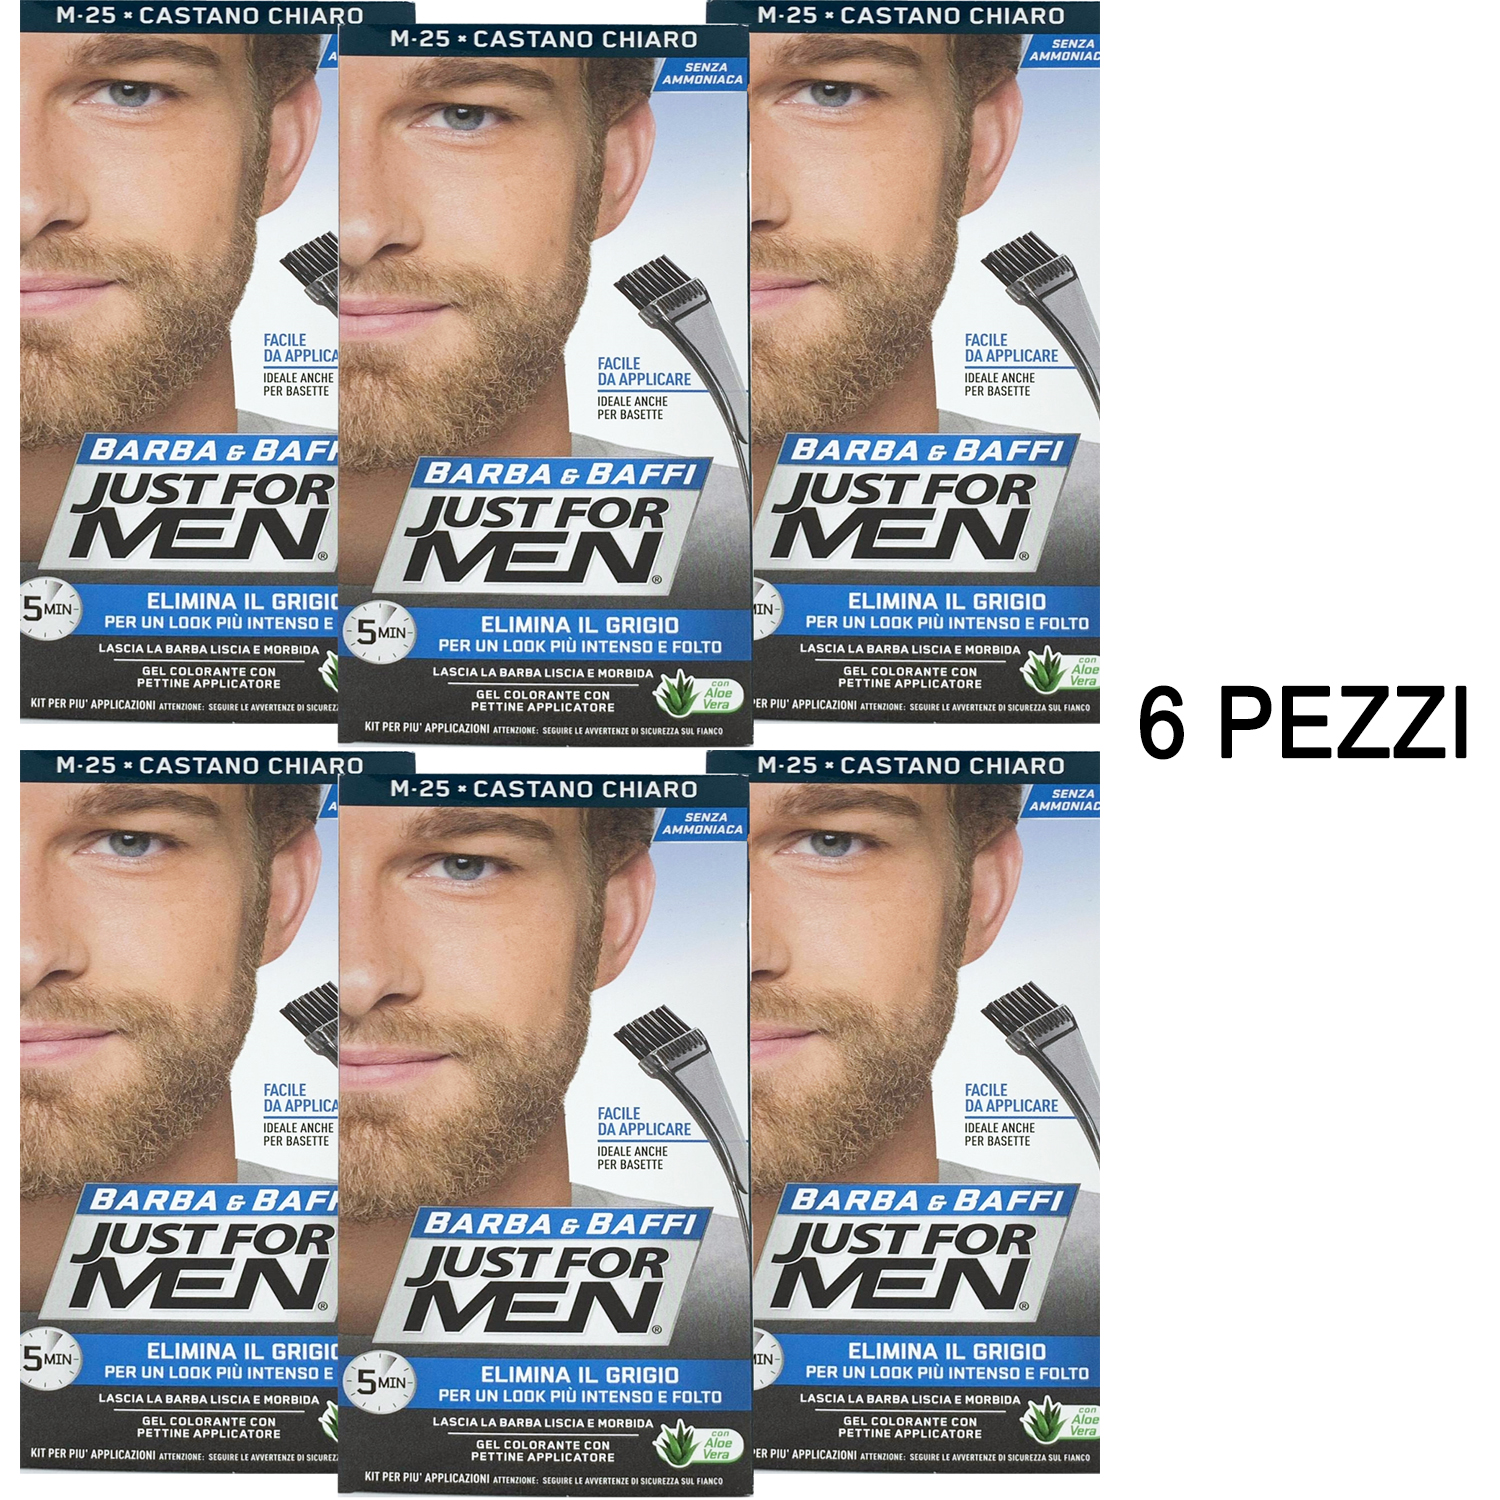 6 X JUST FOR MEN BARBA E BAFFI COLORE TINTURA UOMO PERMANENTE CON PENNELLO SENZA AMMONIACA CASTANO CHIARO M 25 2X 14 ML GEL COLORANTE